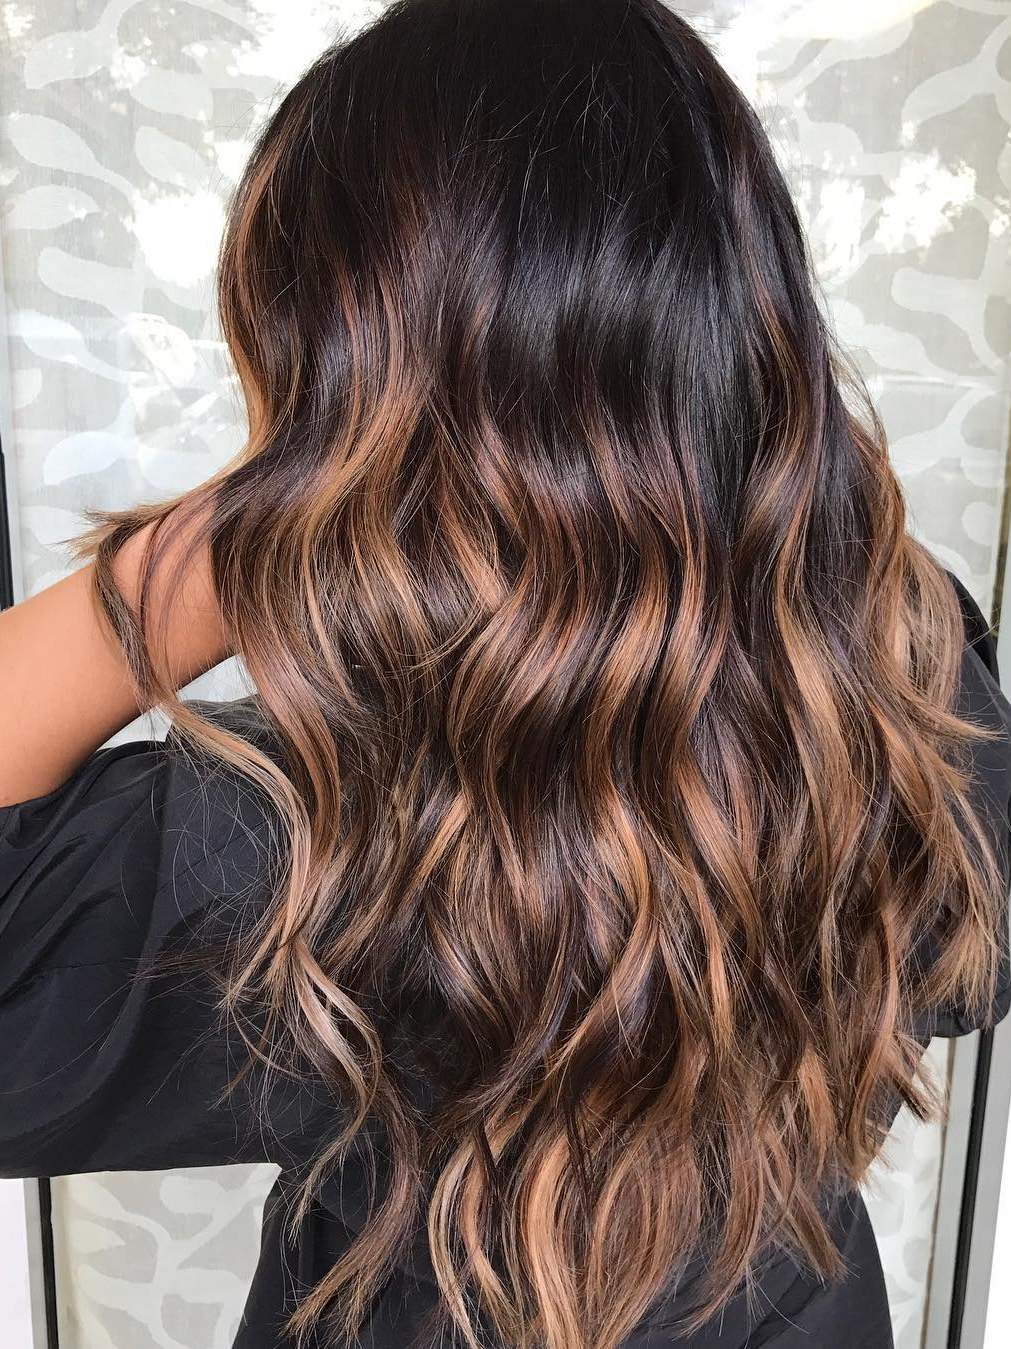 What is the fashionable hair color